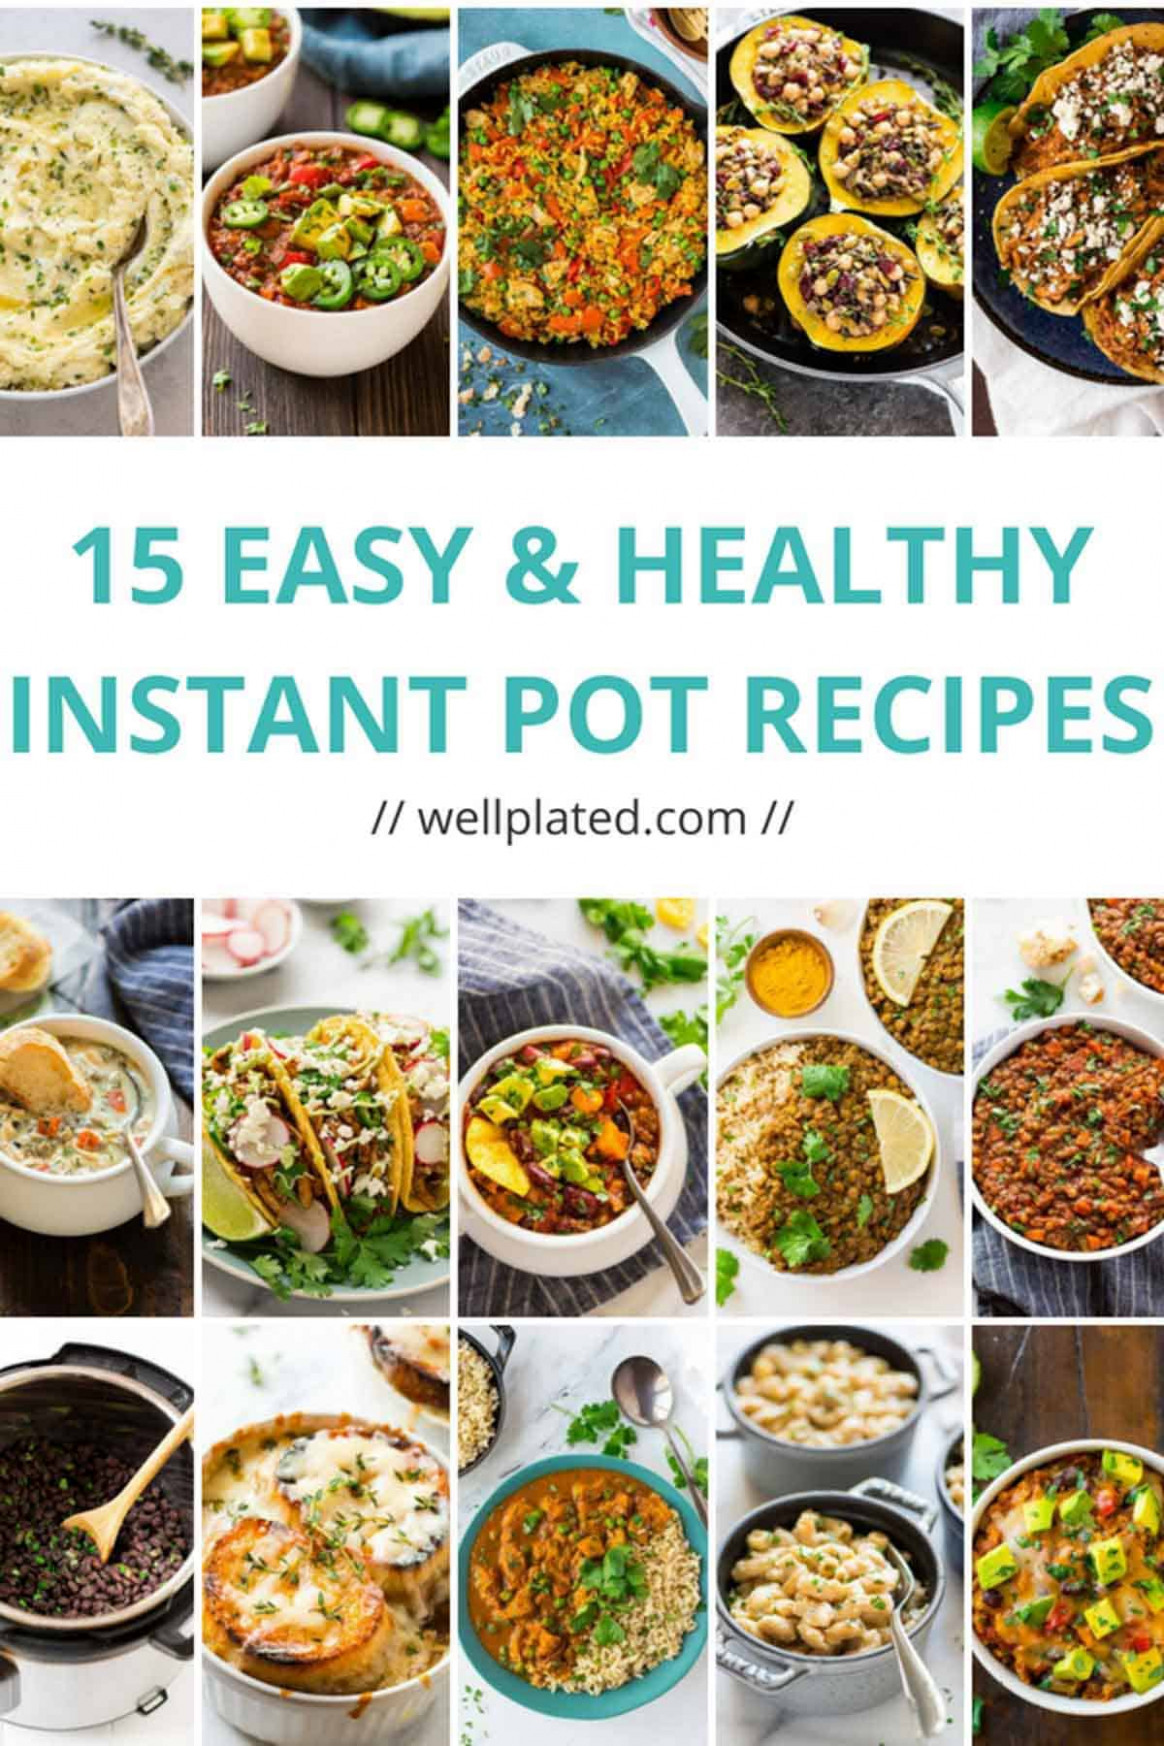 15 Healthy Instant Pot Recipes That Anyone Can Make - instant pot recipes healthy dinner